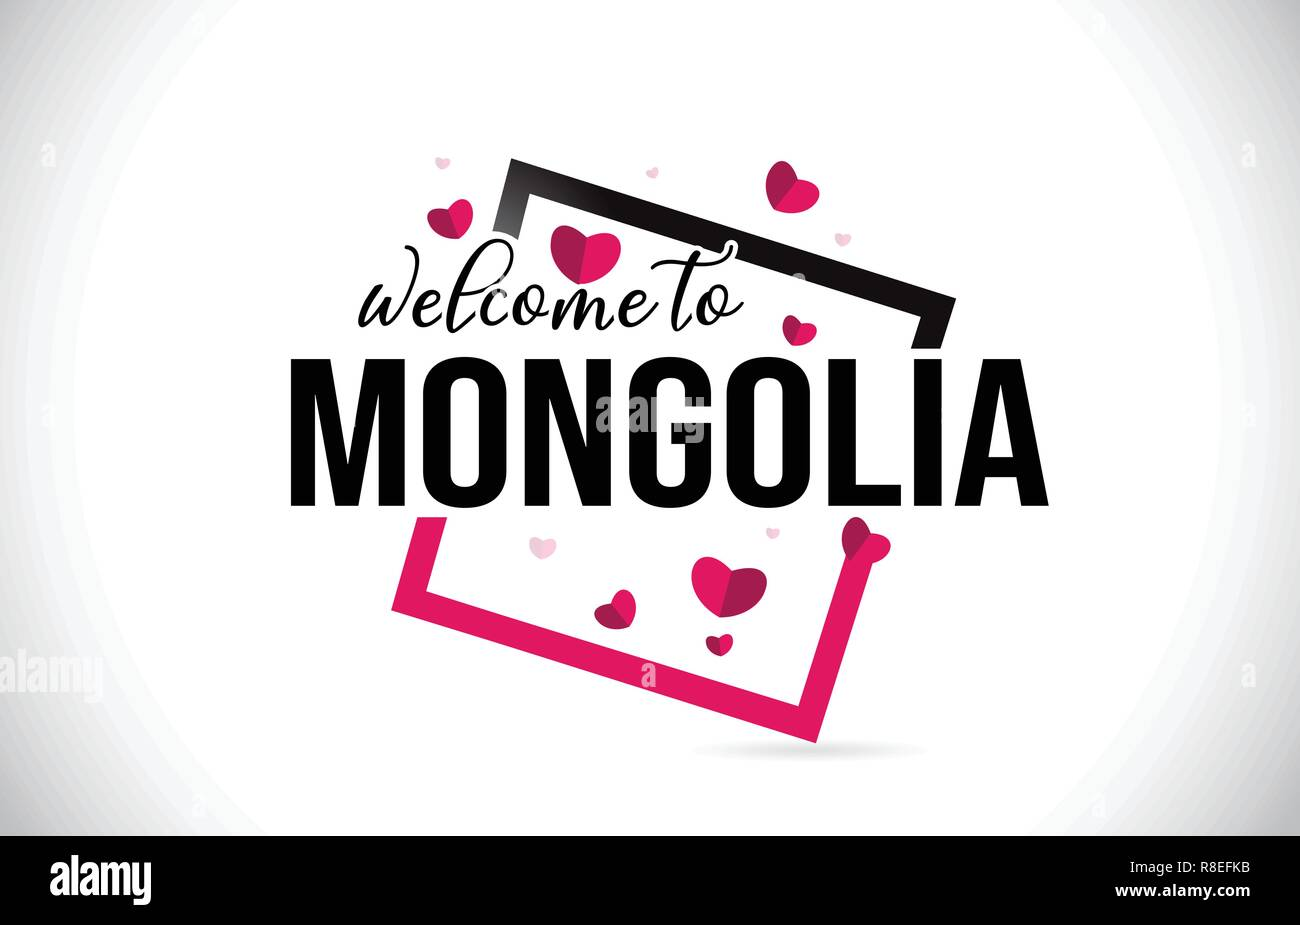 Mongolia Welcome To Word Text with Handwritten Font and  Red Hearts Square Design Illustration Vector. - Stock Vector